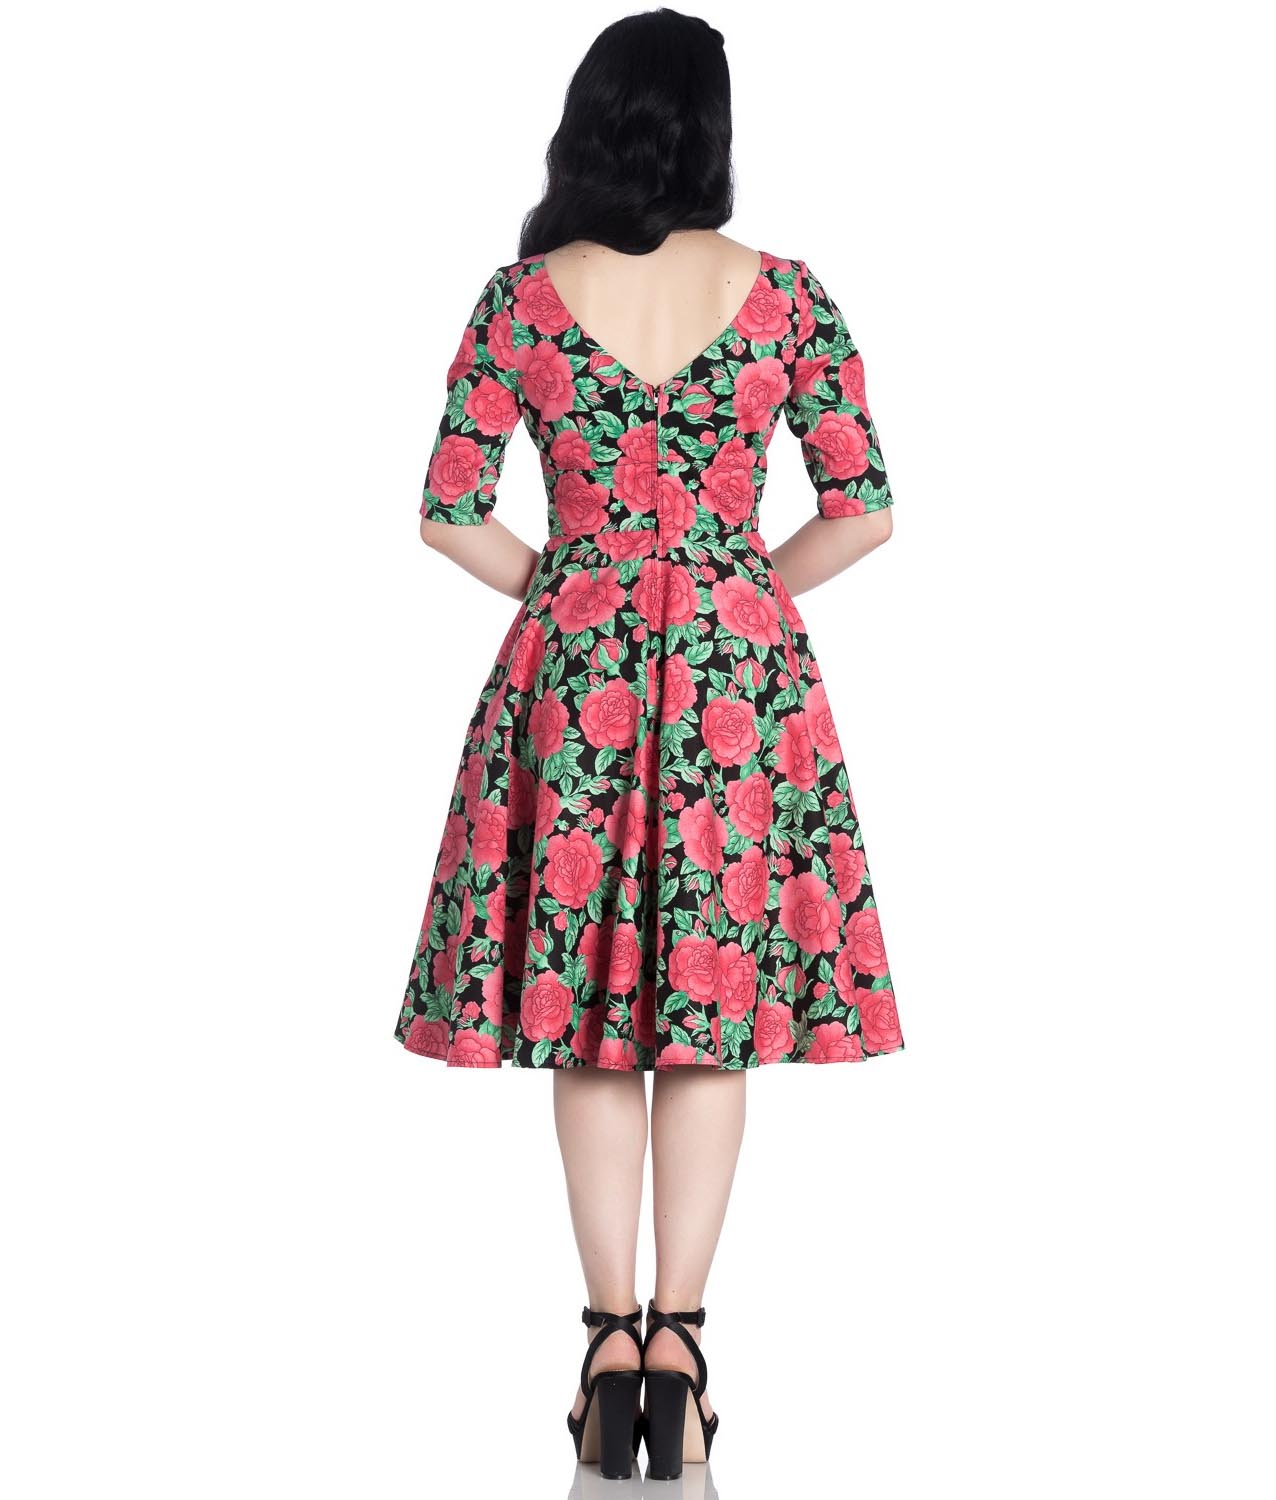 Hell-Bunny-40s-50s-Black-Pin-Up-Vintage-Dress-DARCY-Pink-Roses-All-Sizes thumbnail 17